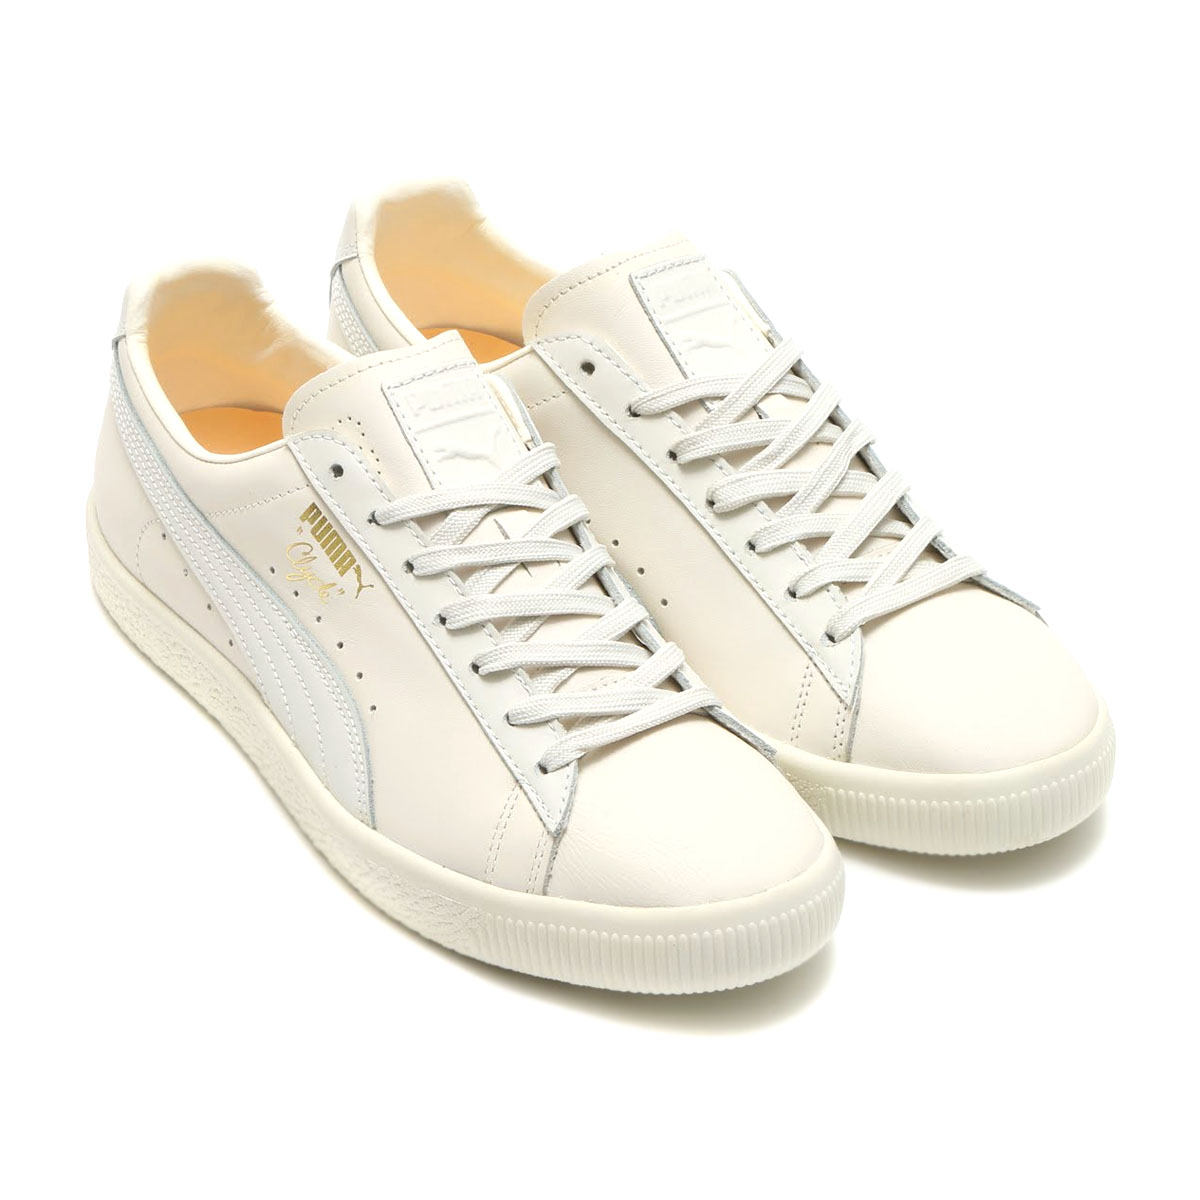 Shoes made of suede cloth which Tommie Smith of the Mexican Olympics men s  200 meters gold medalist wore in 1968 are bases. It is an opening of Clyde  I ... 7b12701ff